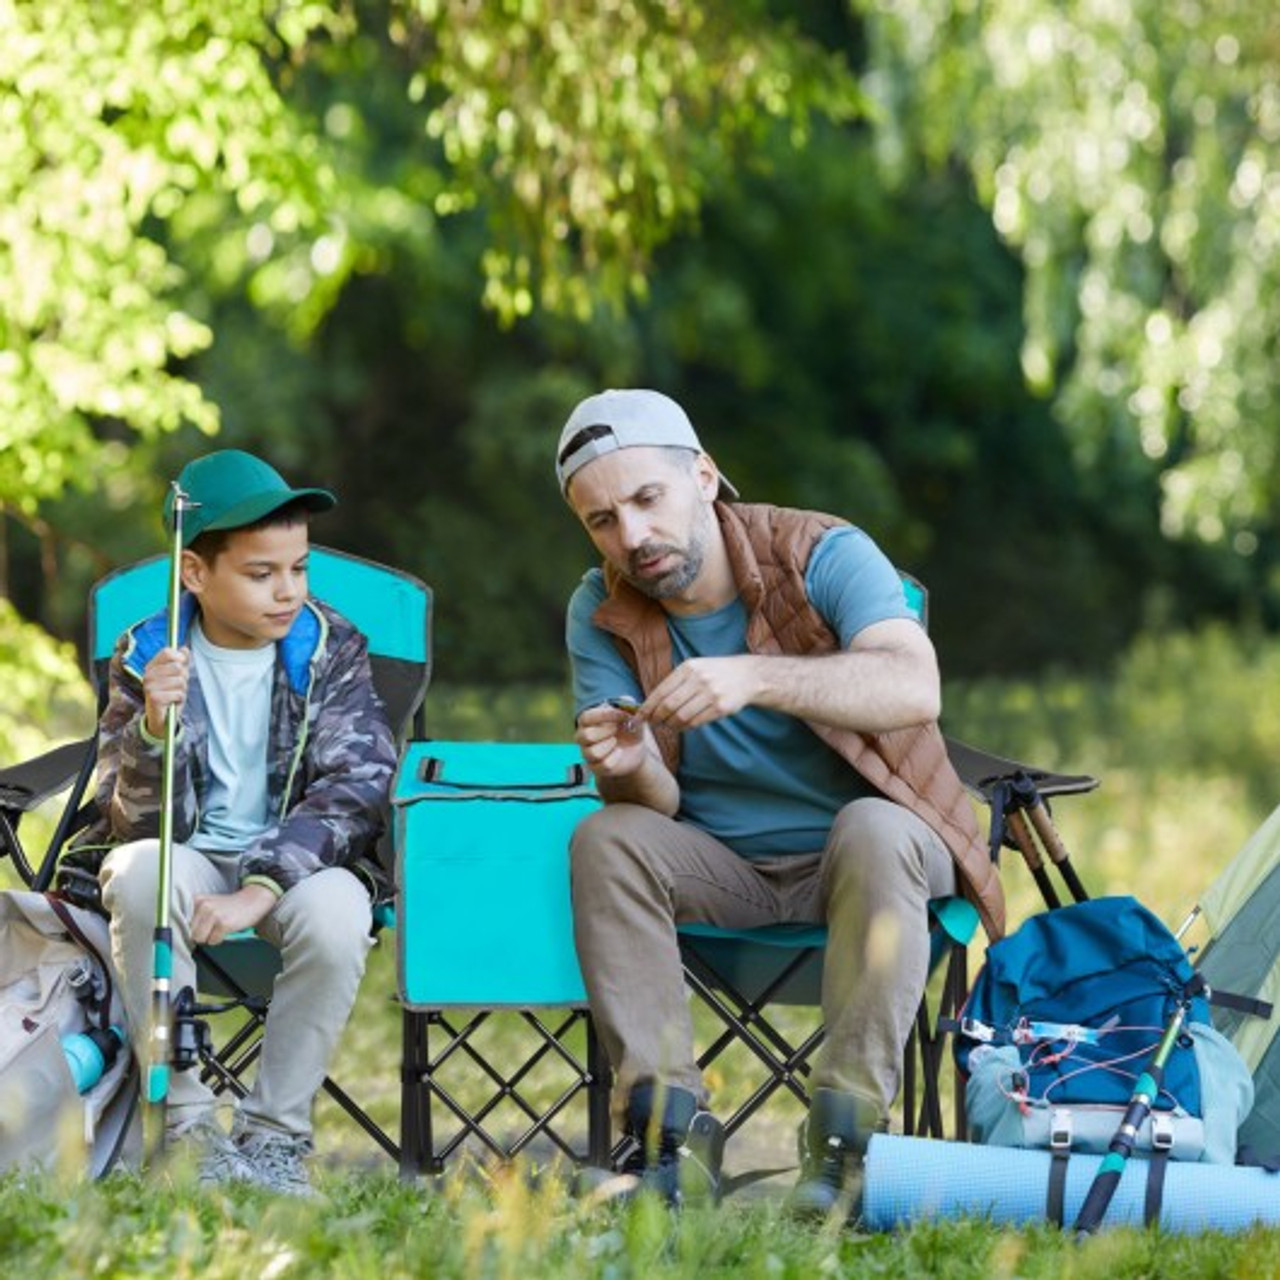 Portable Folding Camping Canopy Chairs with Cup Holder